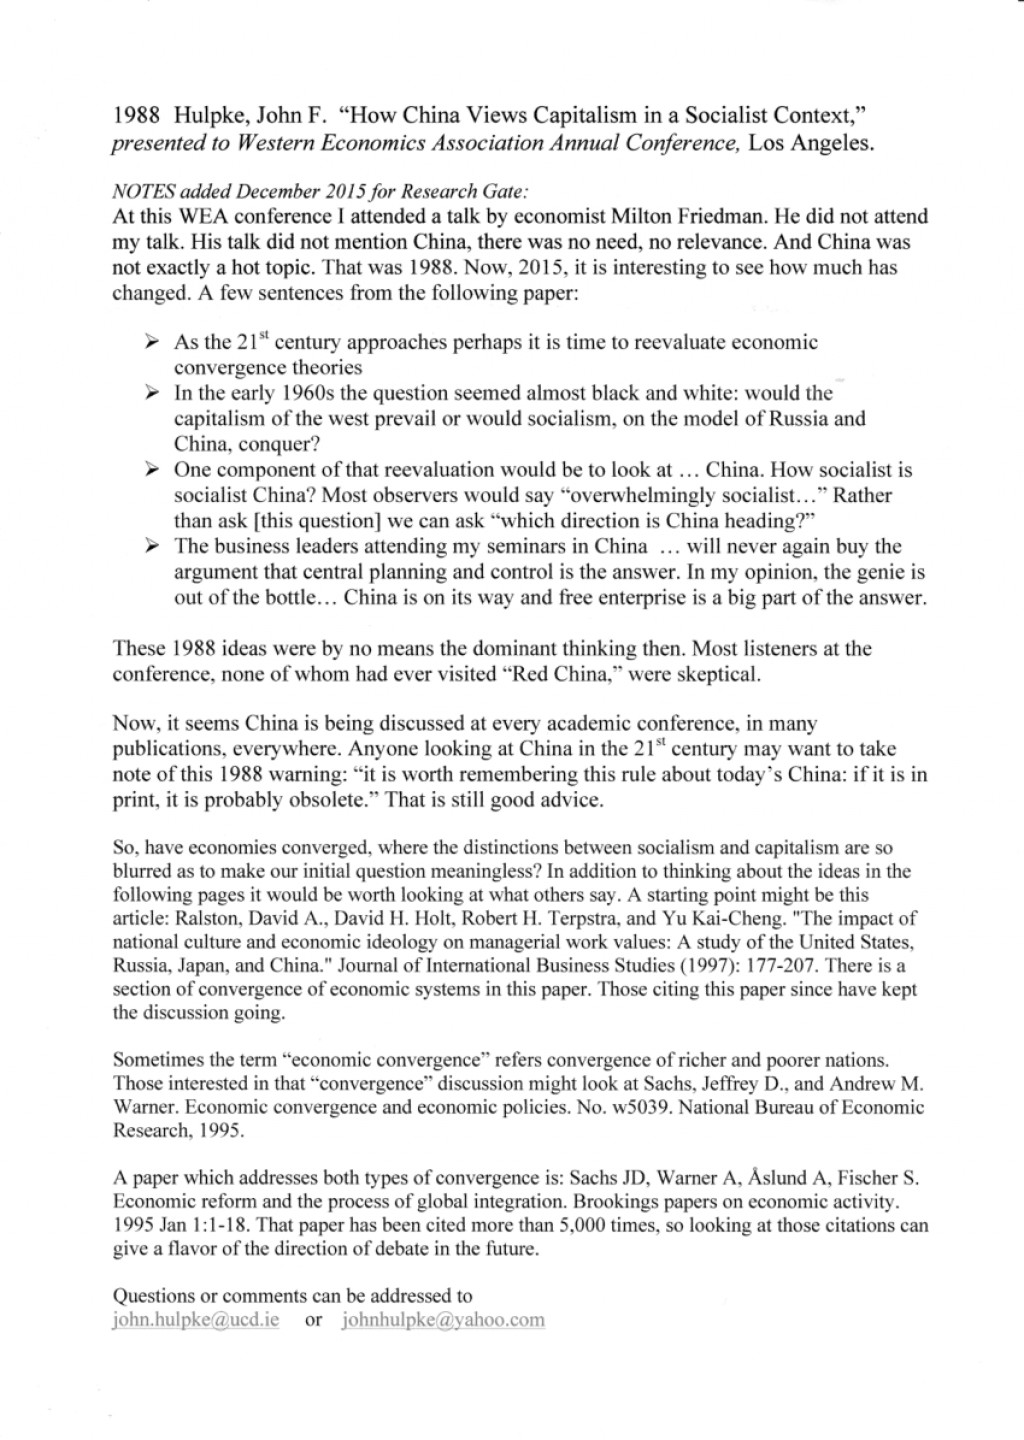 006 Largepreview Research Paper Chinese Economy Awful Topics Large